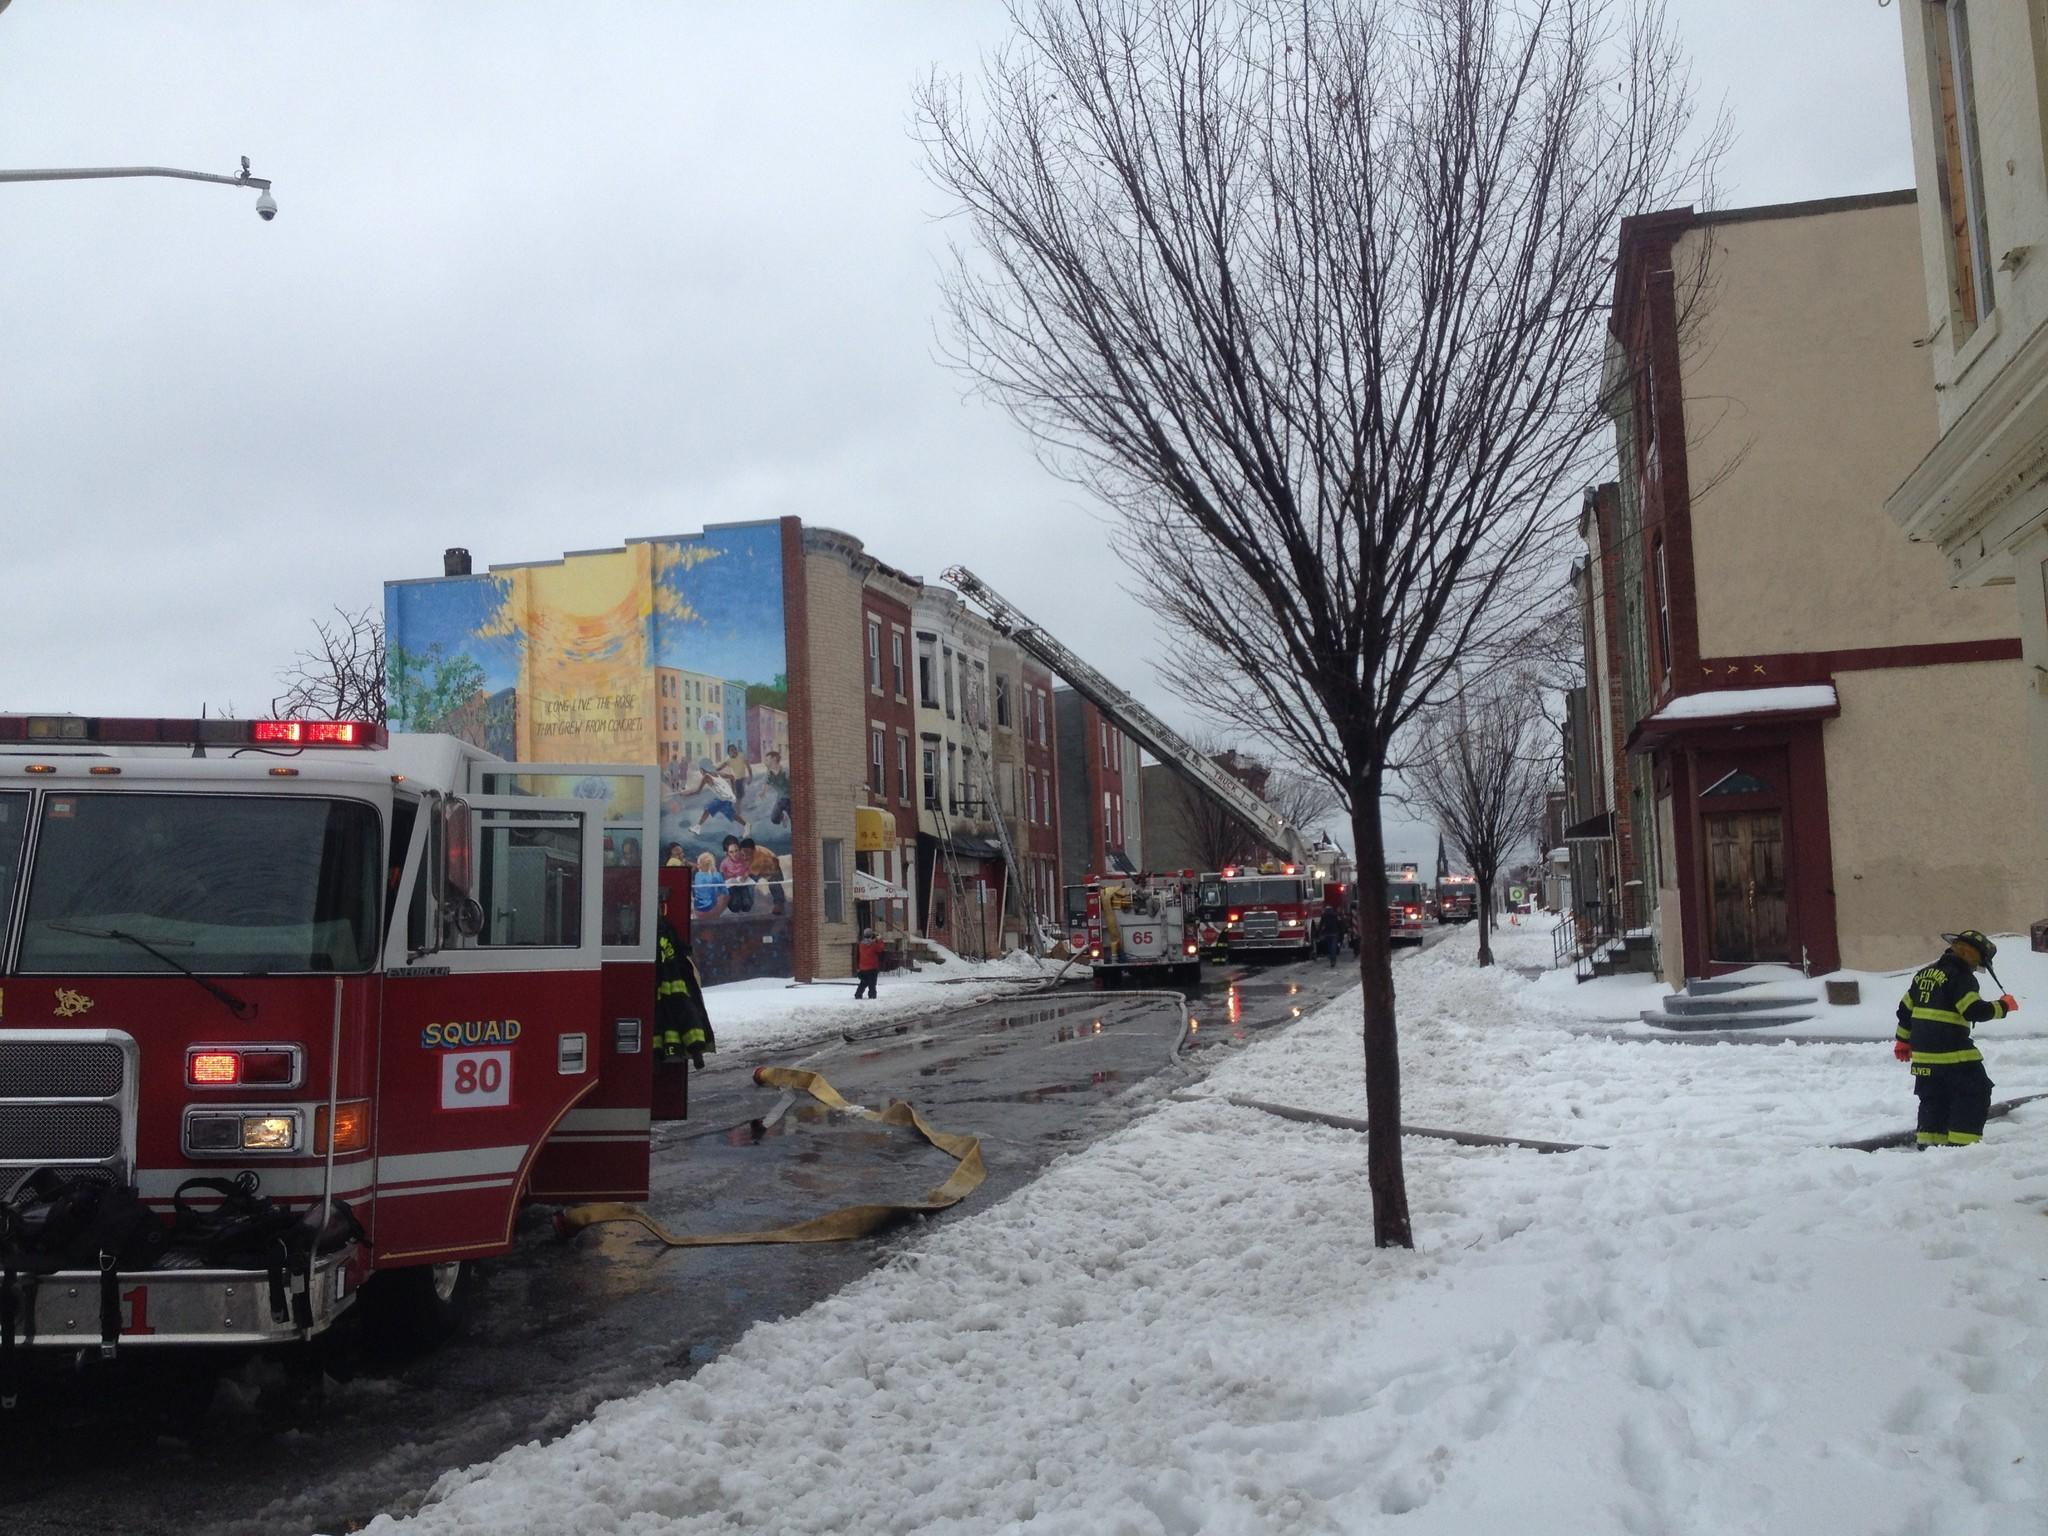 Baltimore fire department on the scene of a fire on Greenmount Avenue.